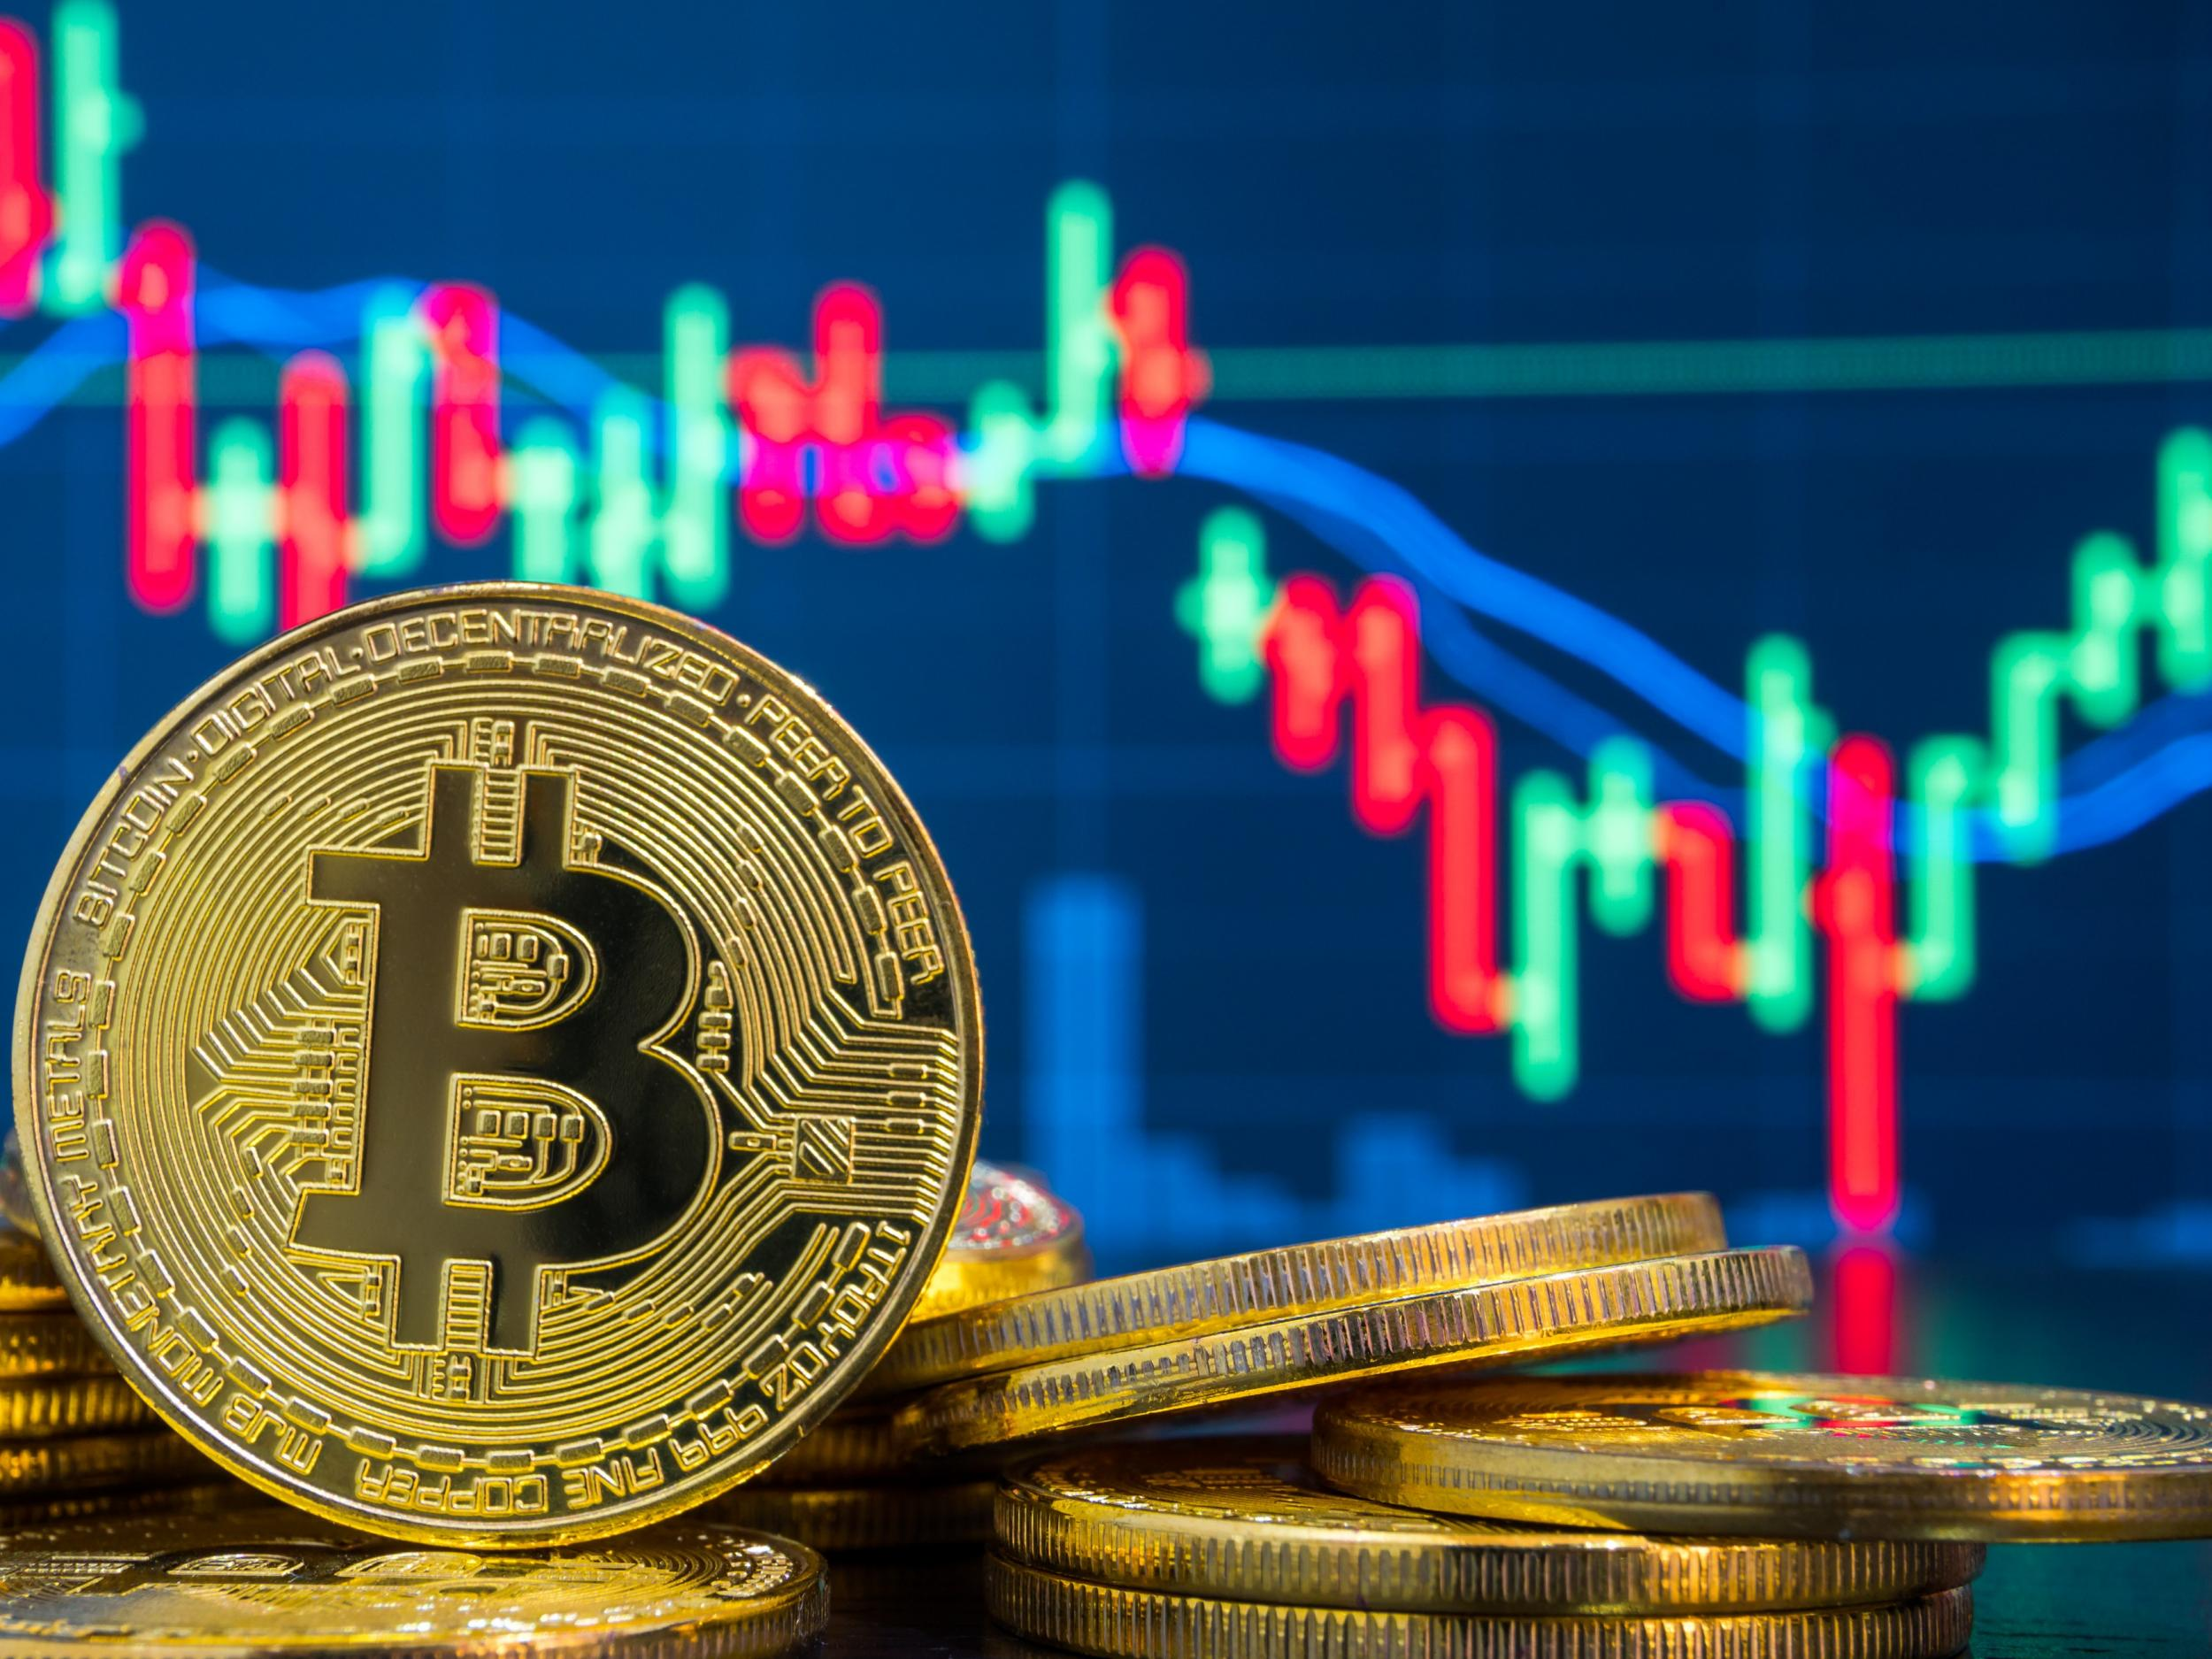 bitcoin price surges past $4,000 as cryptocurrency experts bet onBitcoi. #19